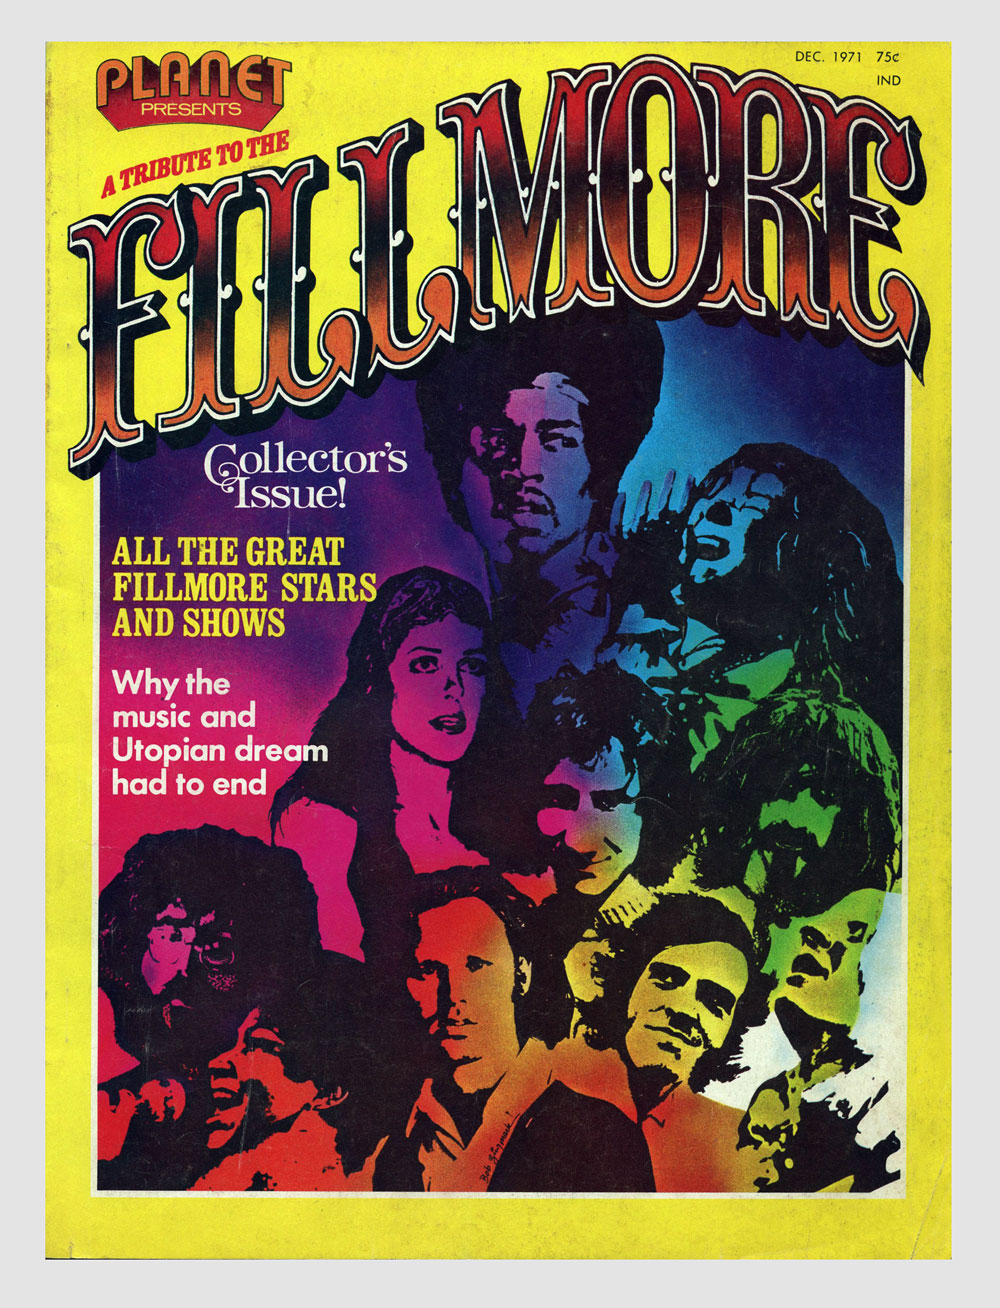 Bill Graham A Tribute to The Fillmore 1971 Last days of Fillmore East & West